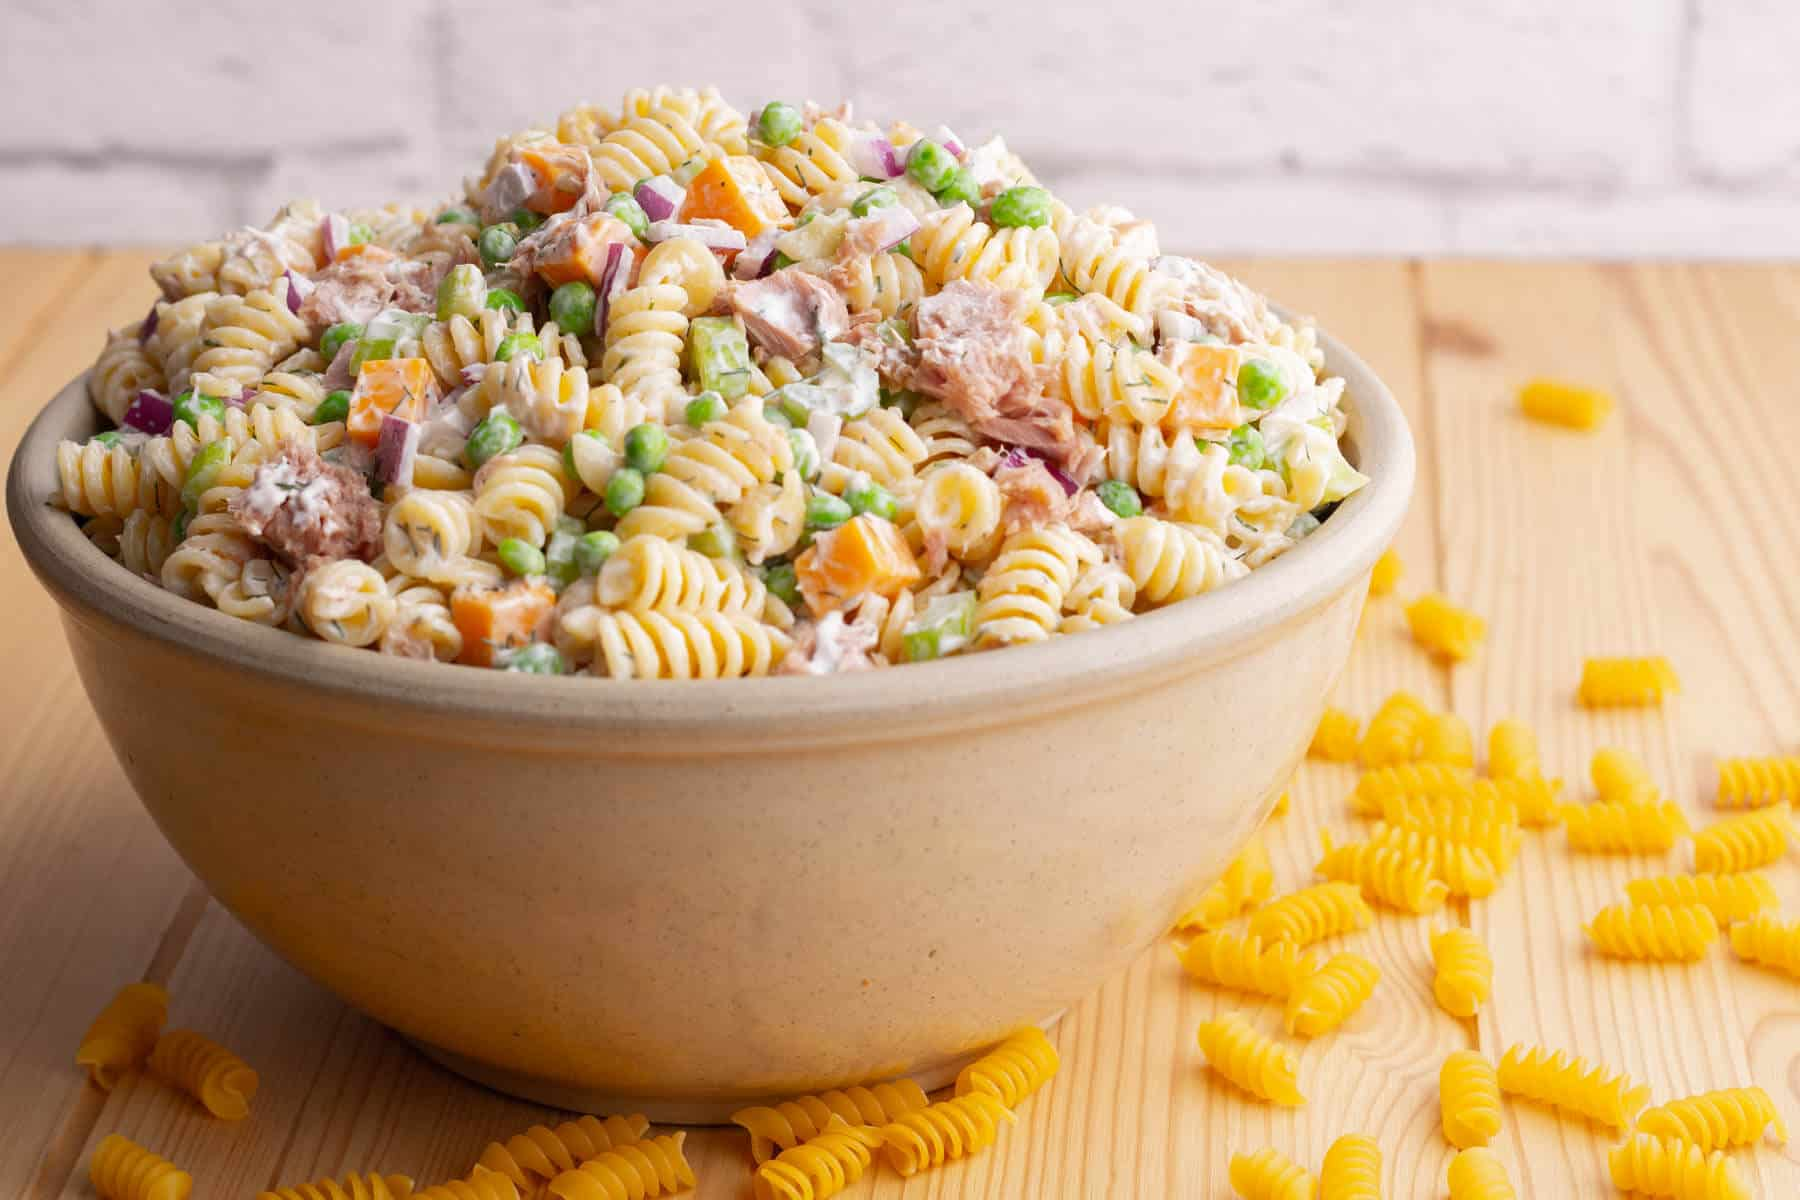 A serving bowl filled with rotini pasta, peas, tuna chunks, red onions, orange cheddar, and celery.